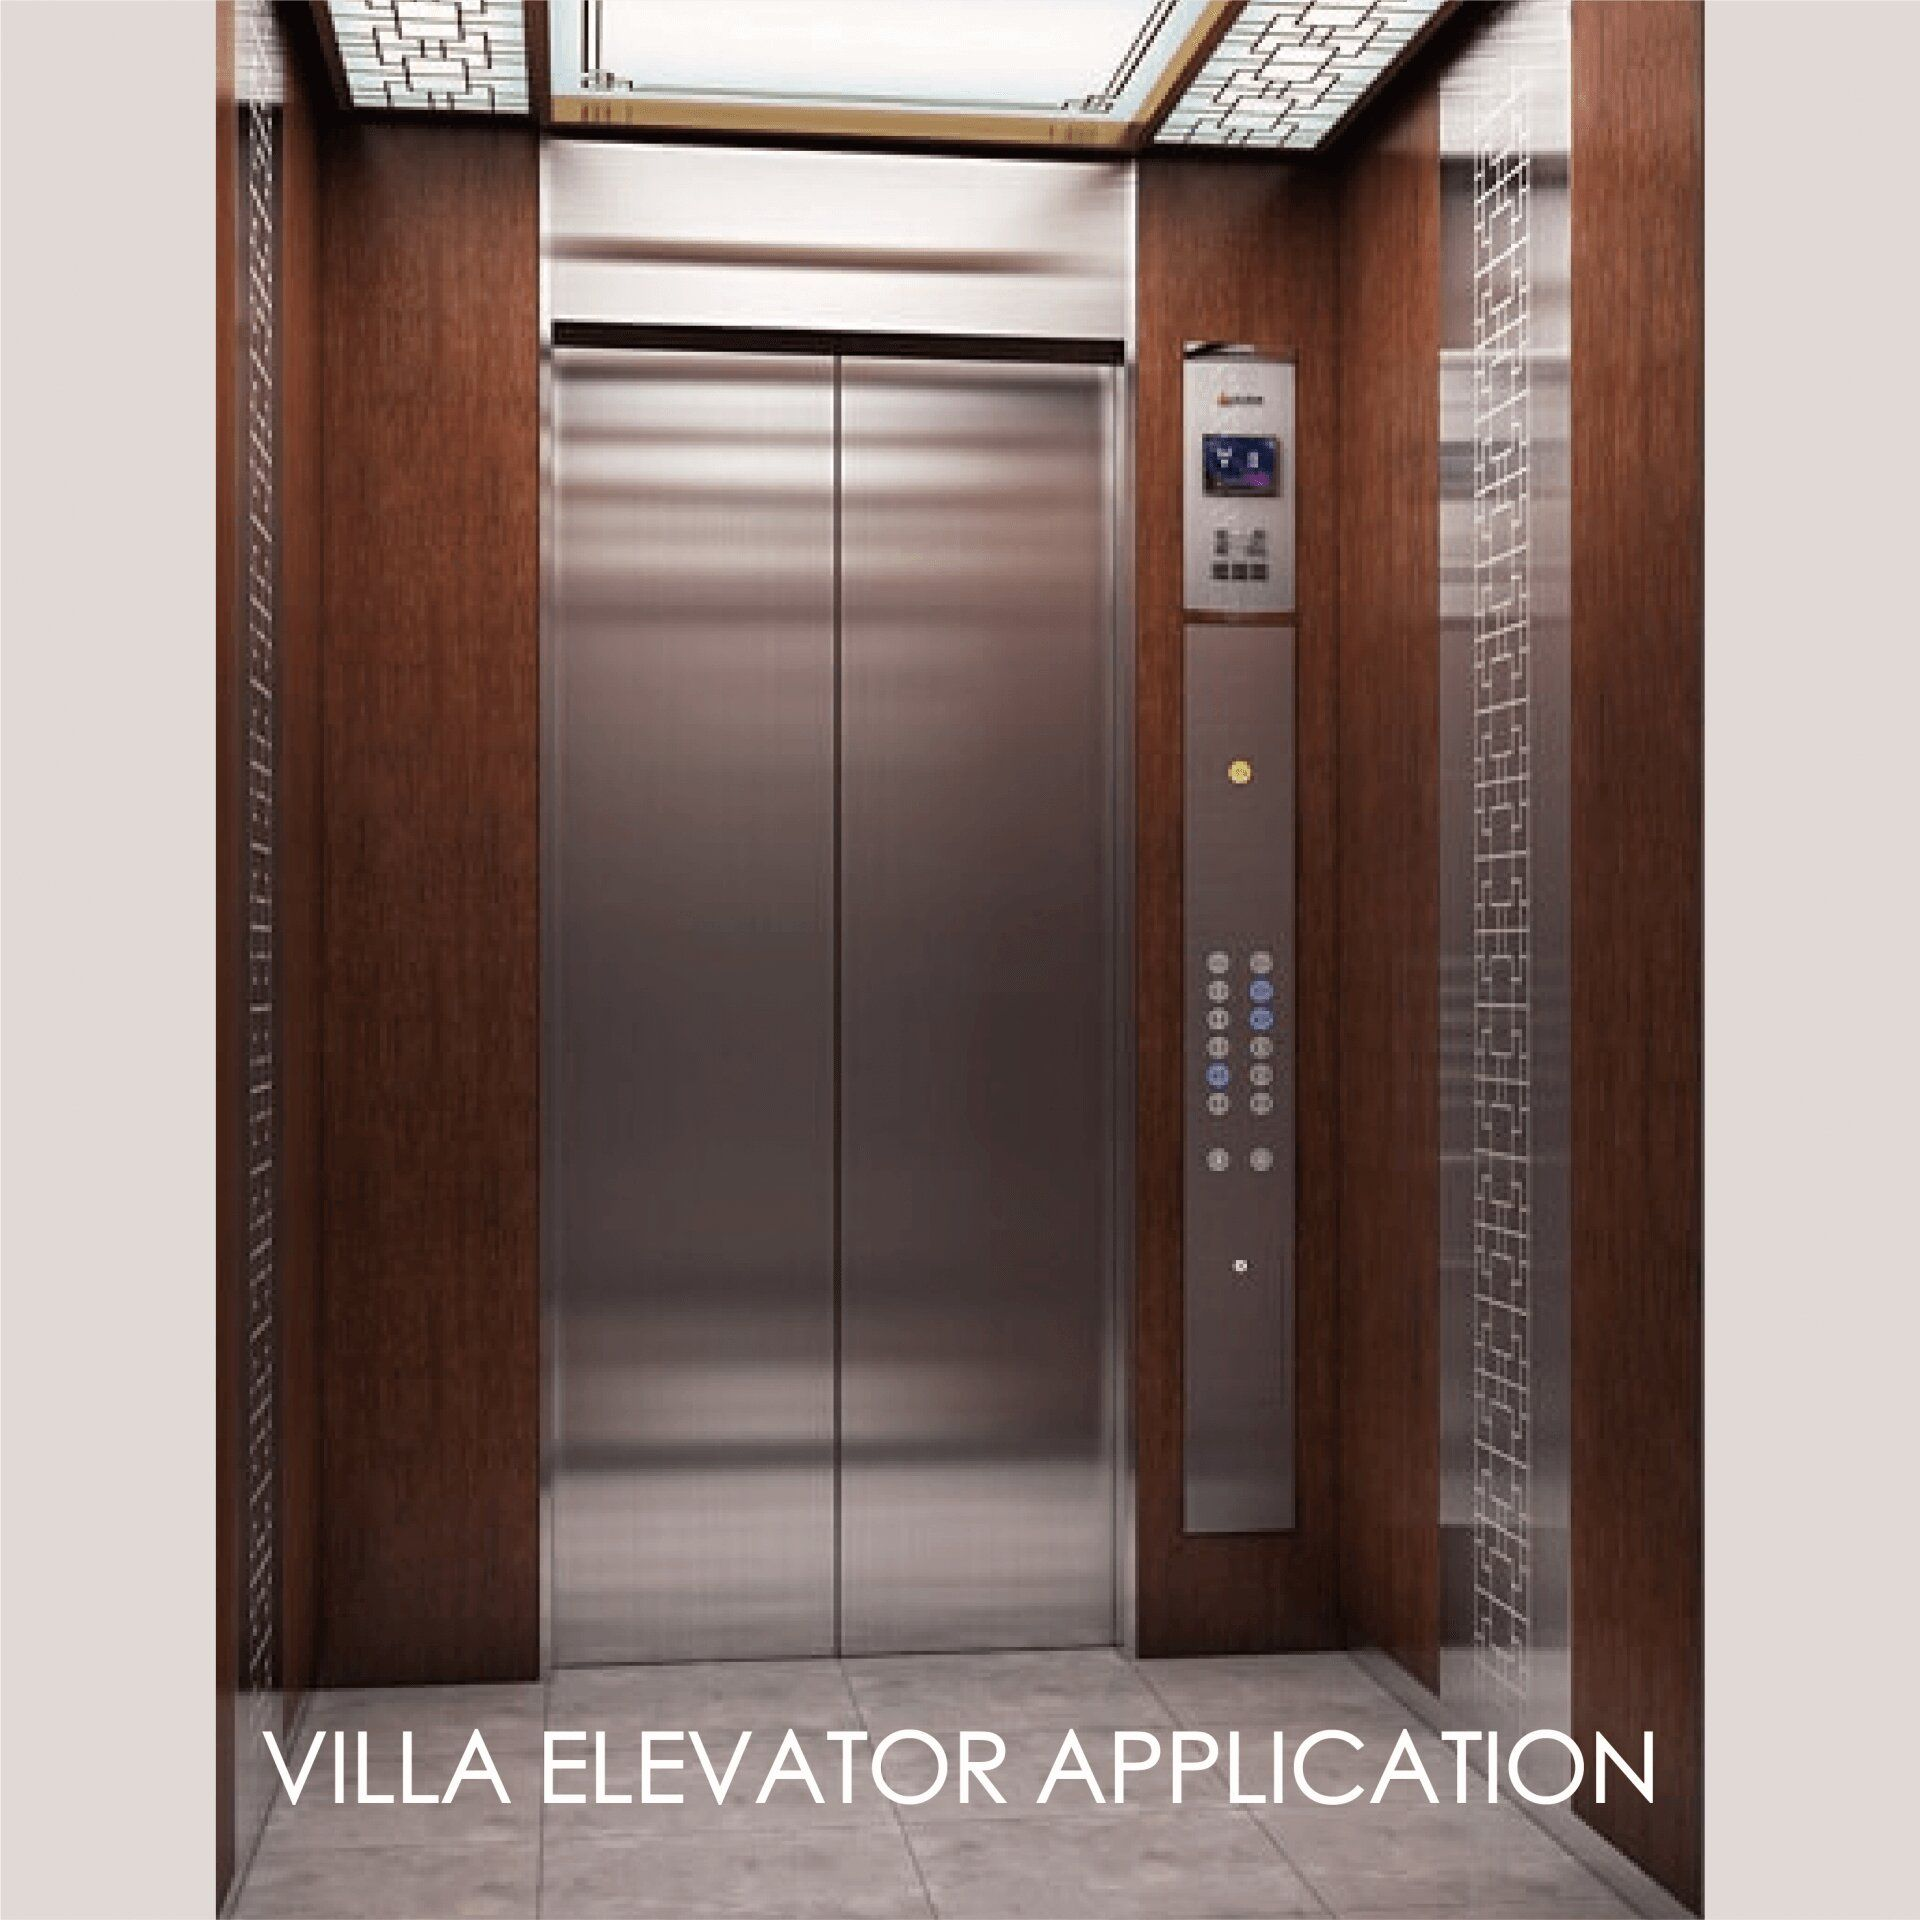 Using laminated metal to decorate the elevator door panel can create the aesthetics and durability